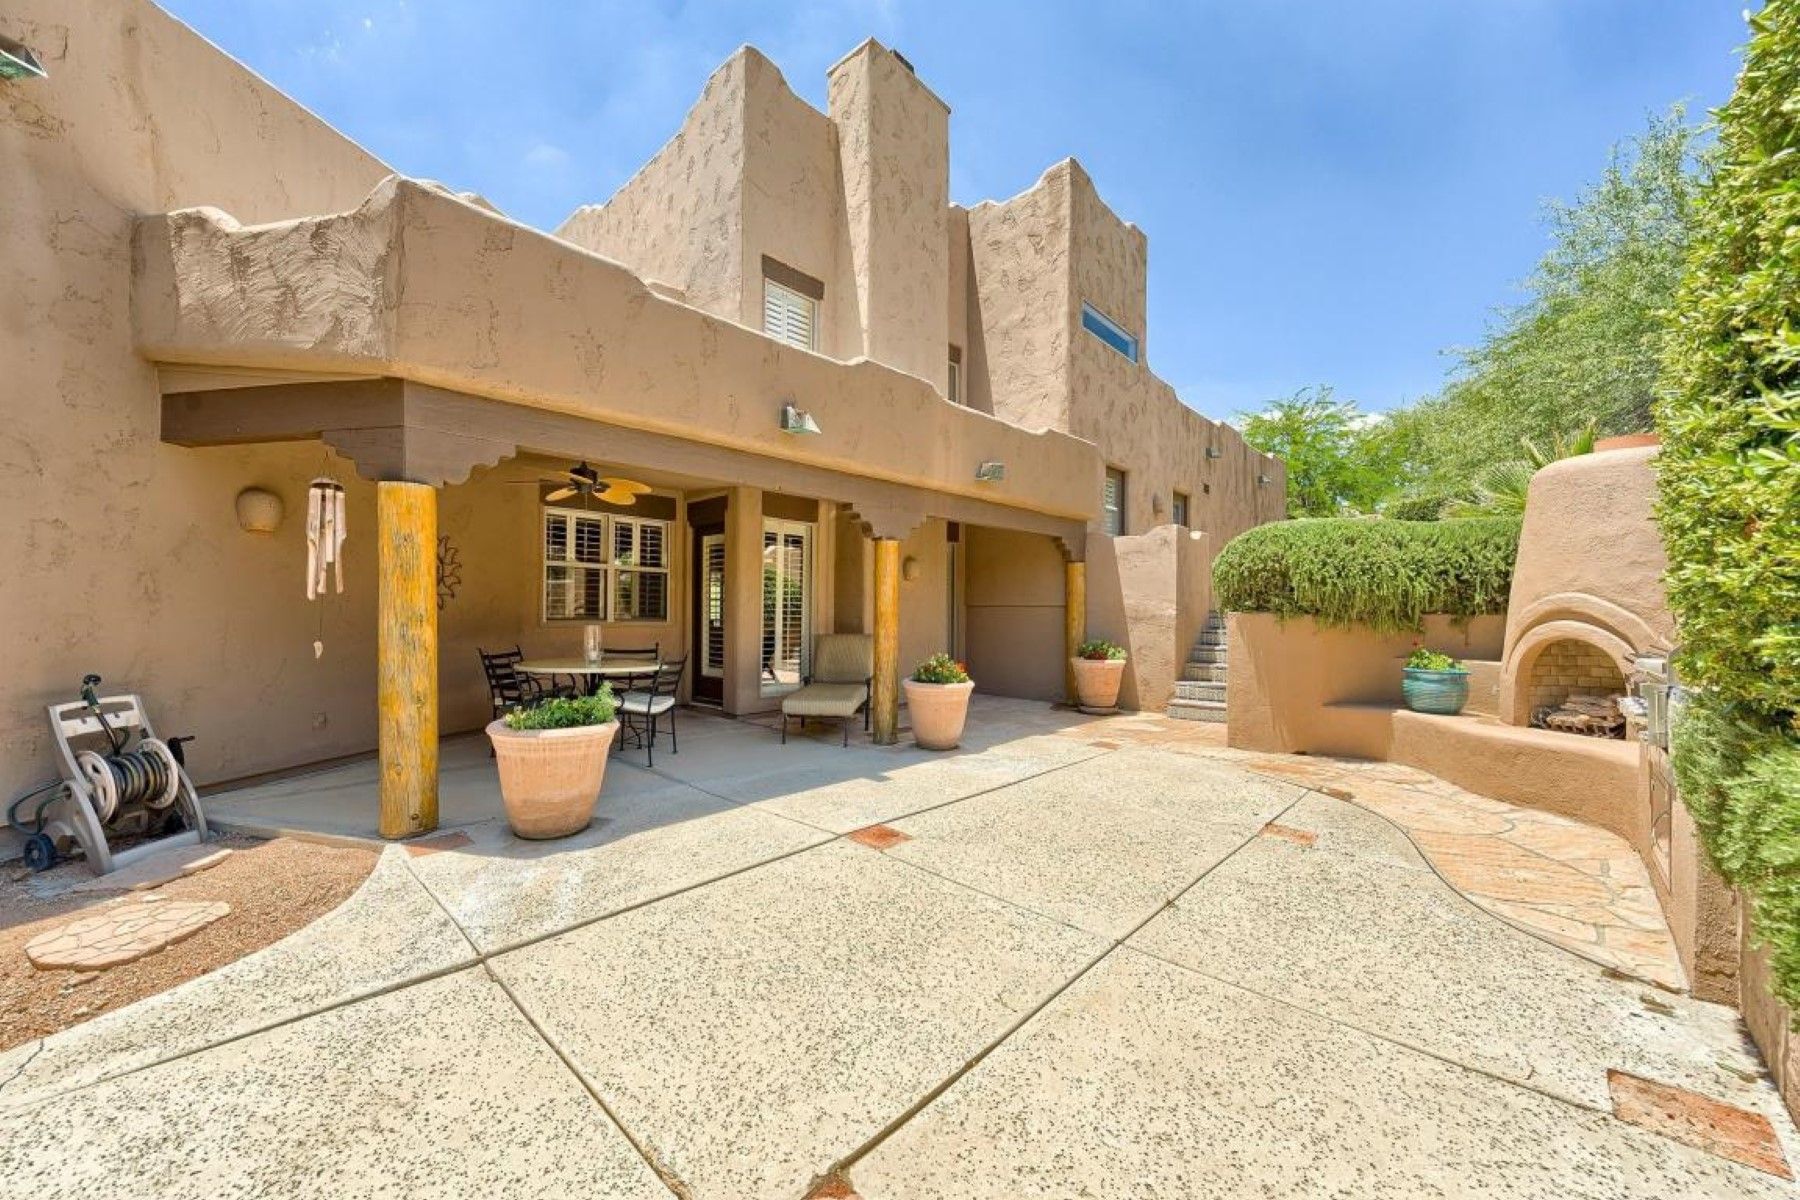 Single Family Home for Sale at Southwest Charmer in Rancho Manana. 38953 N 57TH PL Cave Creek, Arizona 85331 United States